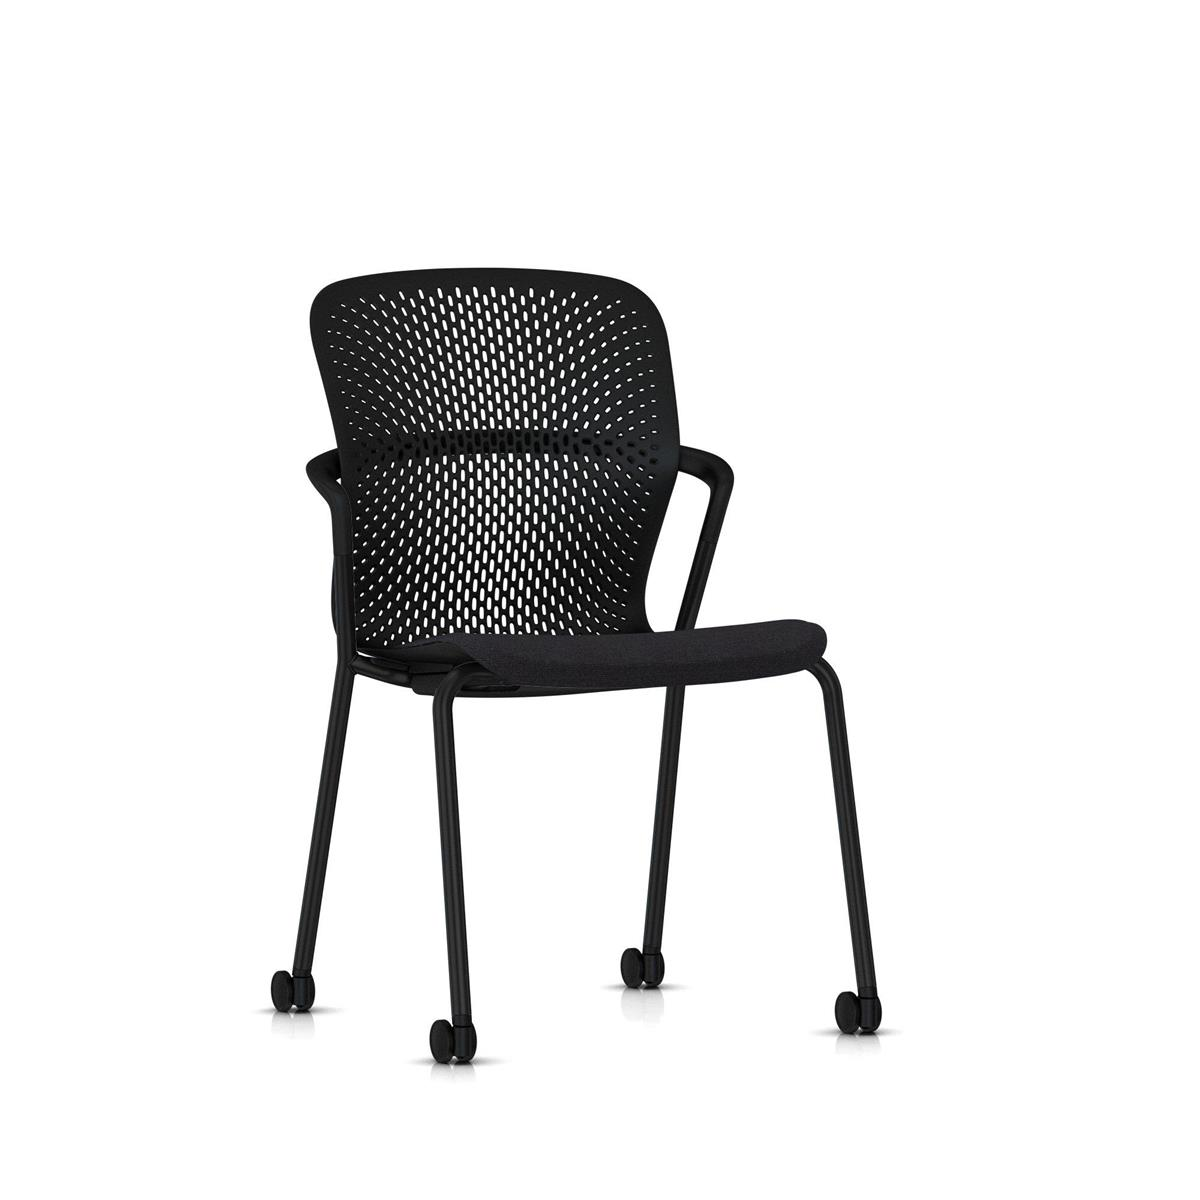 Keyn 4 Leg Chair - Black med  Camira Sprint tekstil og trinser